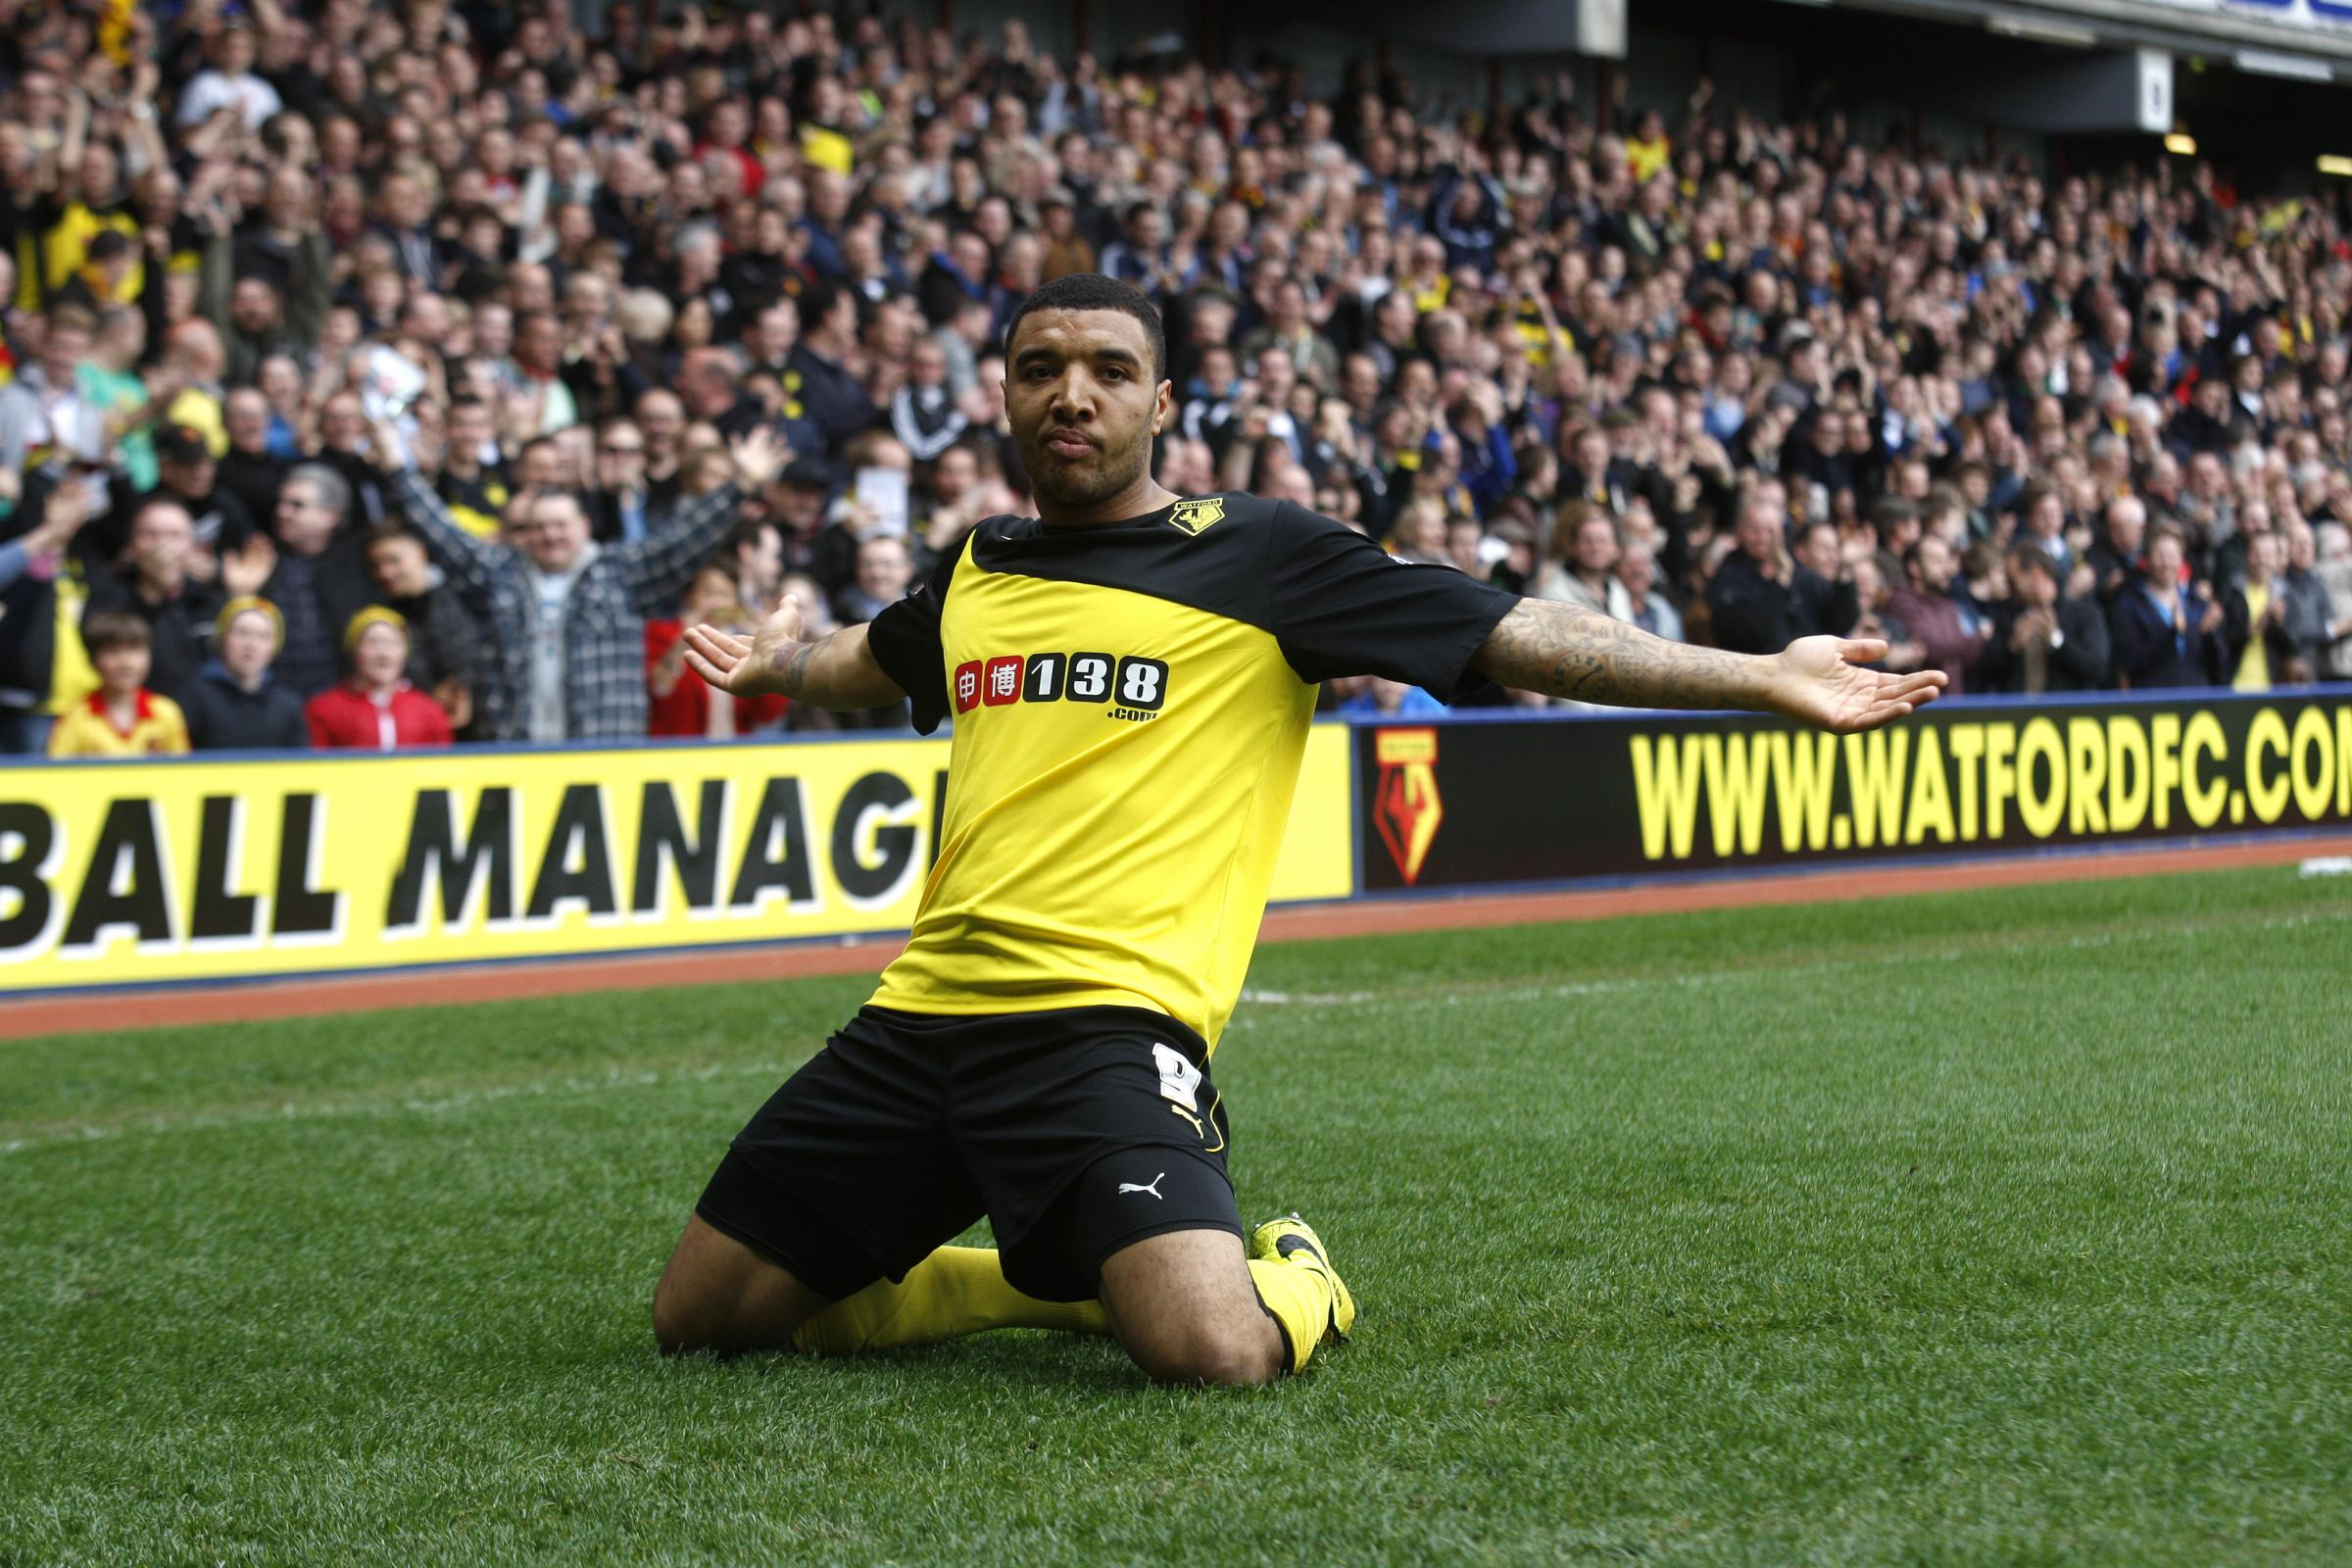 Watford Observer: Troy Deeney at the Watford FC ground in Vicarage Road